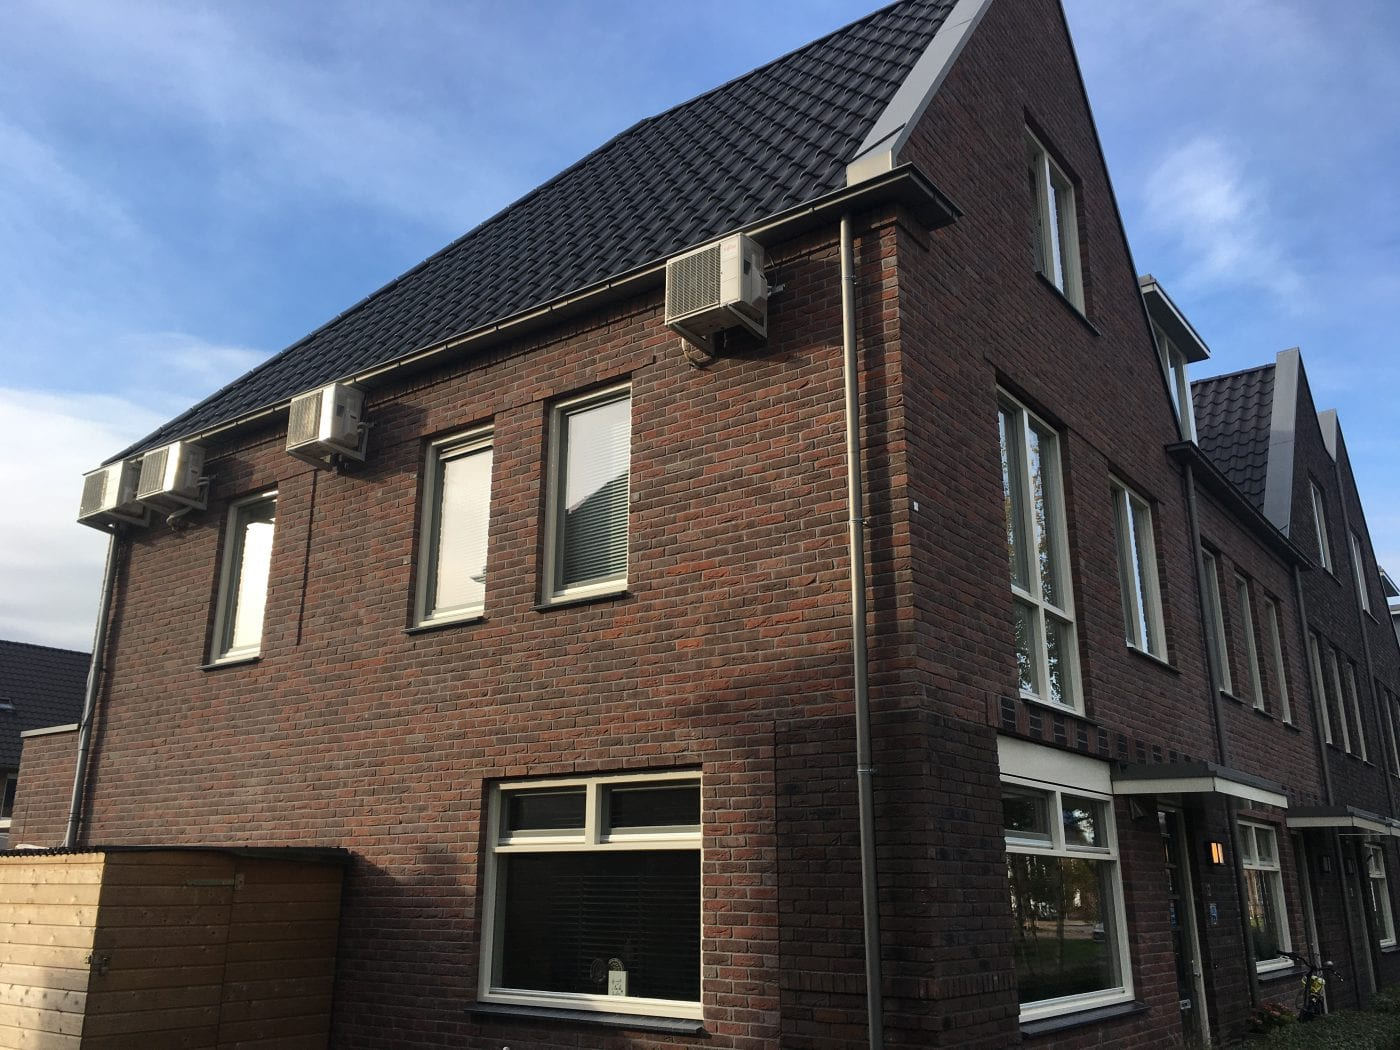 Bouwfout overvloed aan airco